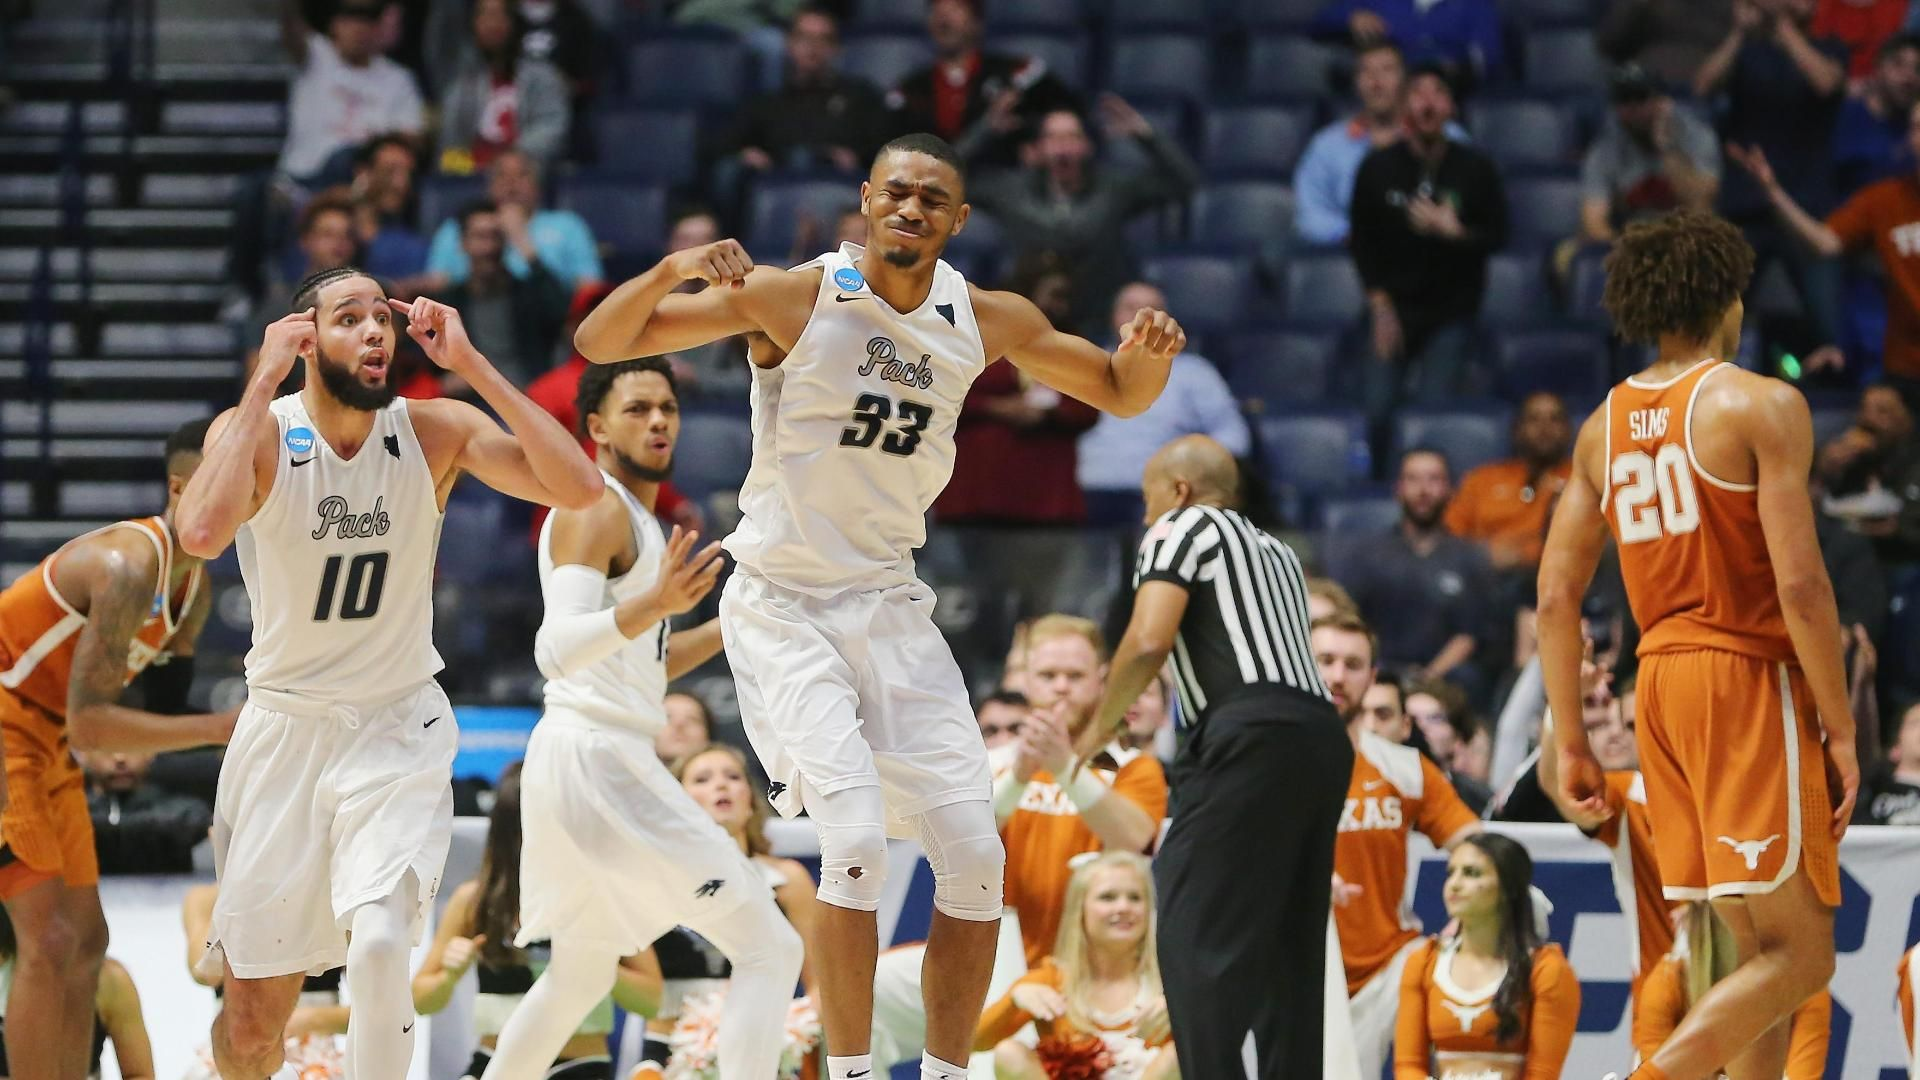 Martin's sharpshooting boosts Nevada over Texas